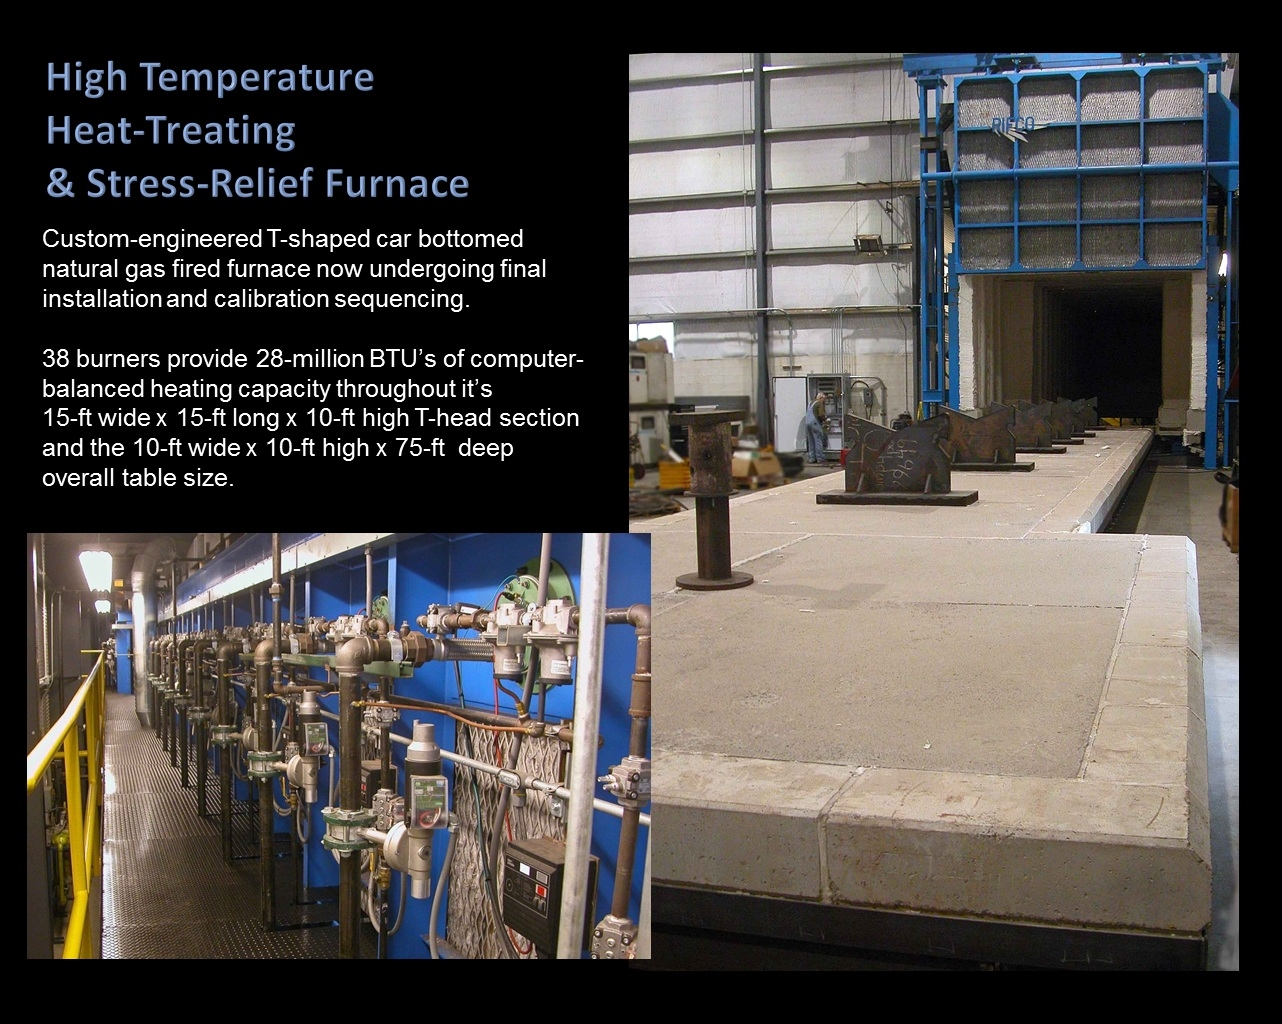 Car-Bottom Furnace Specifications